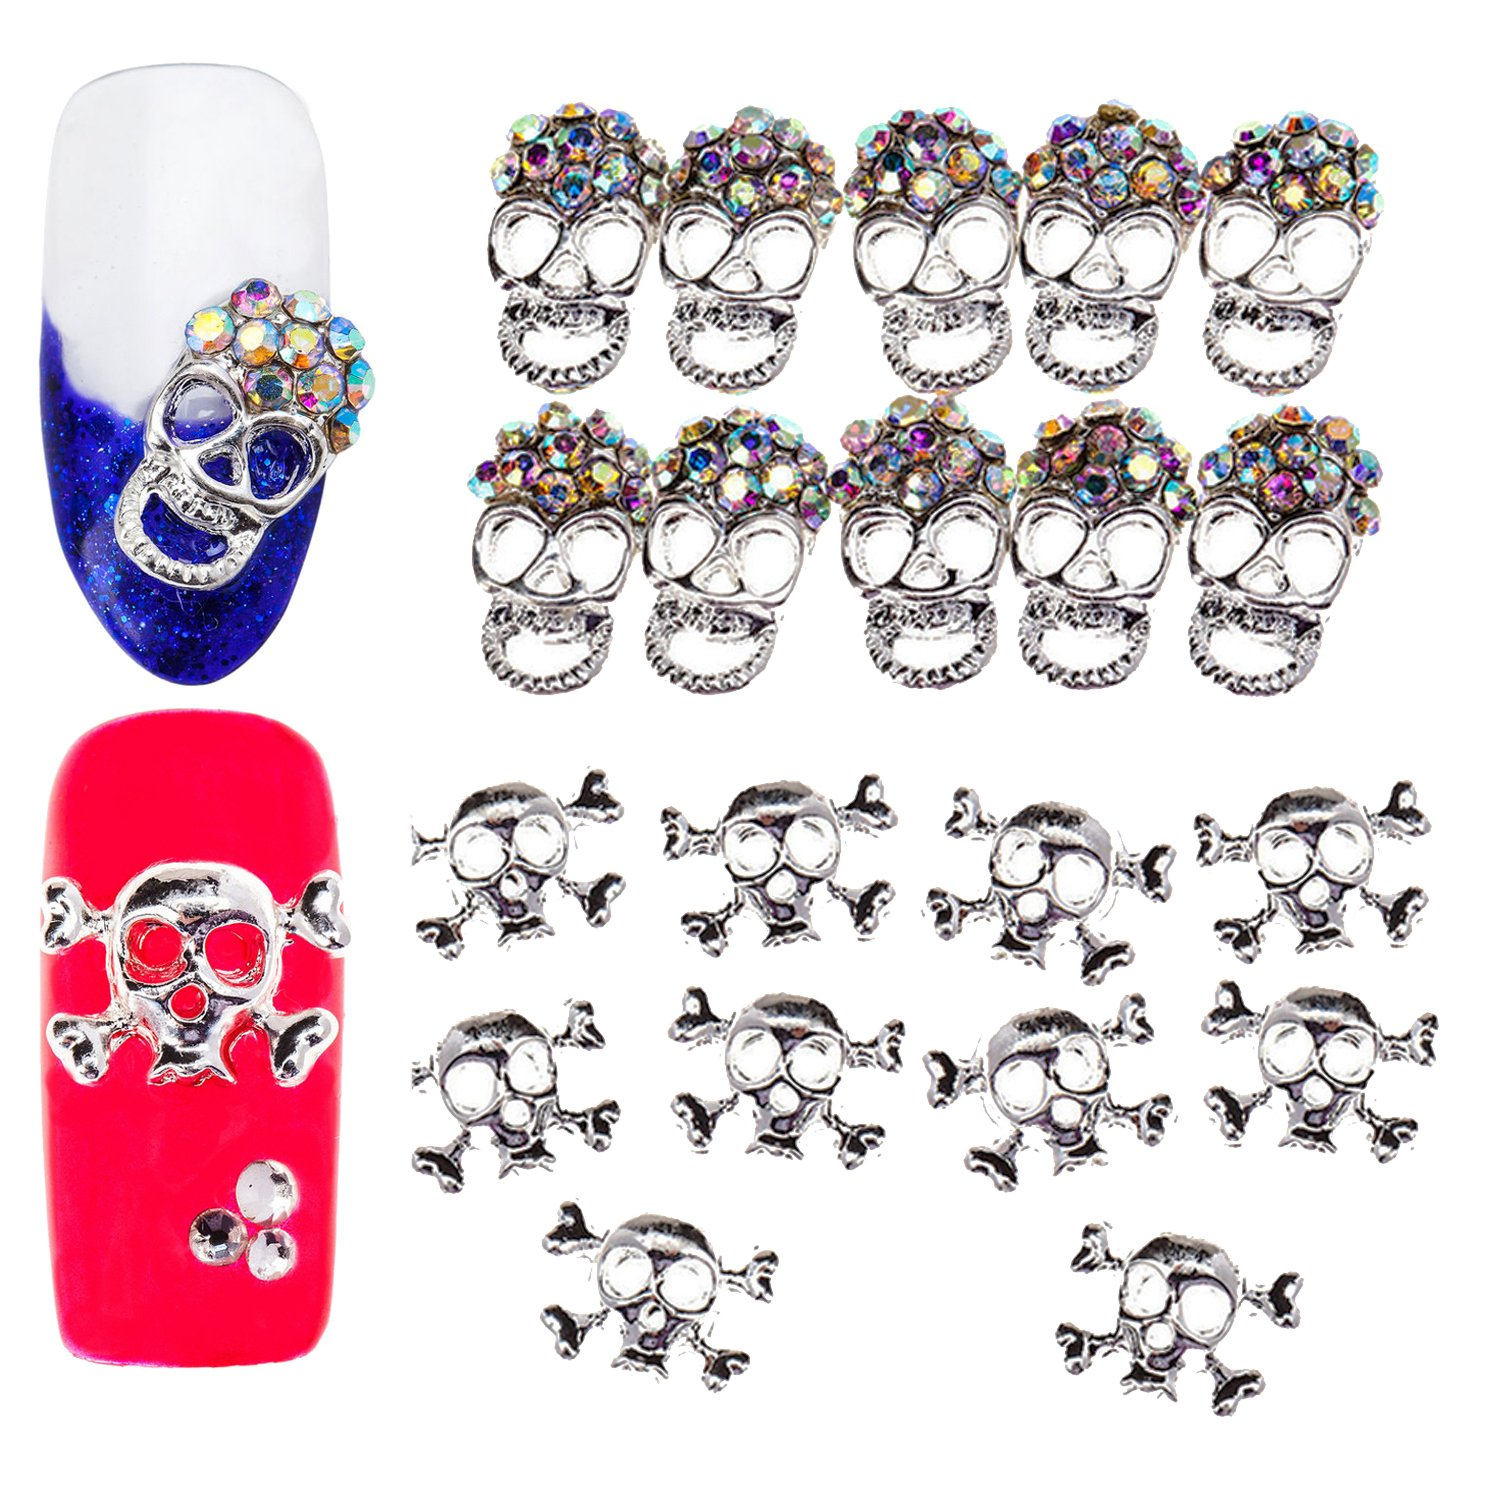 3D Nail Art Manicure Designs Set of 20pcs Skulls Shaped Decorations Studded With Crystals Rhinestones Gems Jewels VAGASHOP